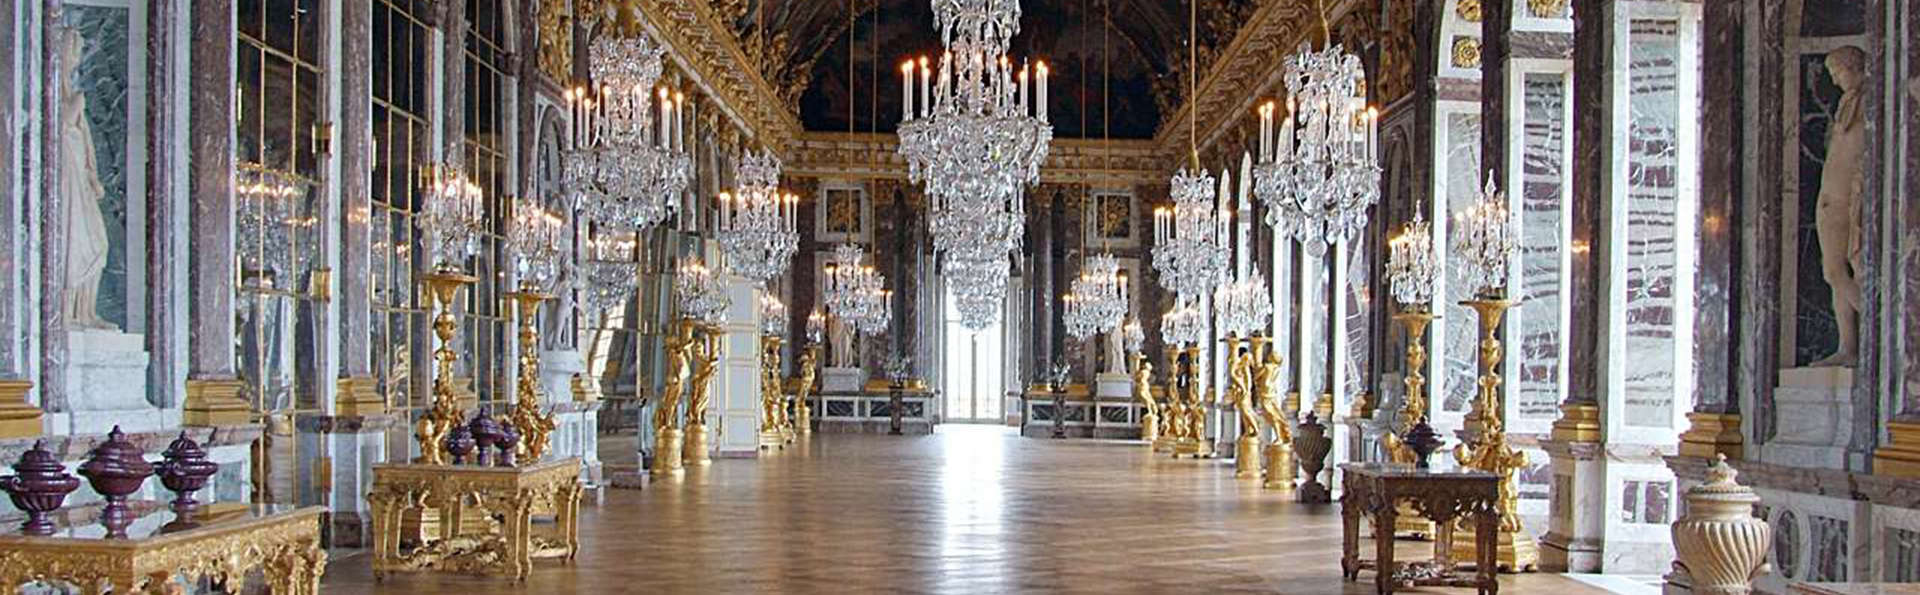 ​Le Louis Versailles Château – Mgallery by sofitel - edit_Versailles3.jpg